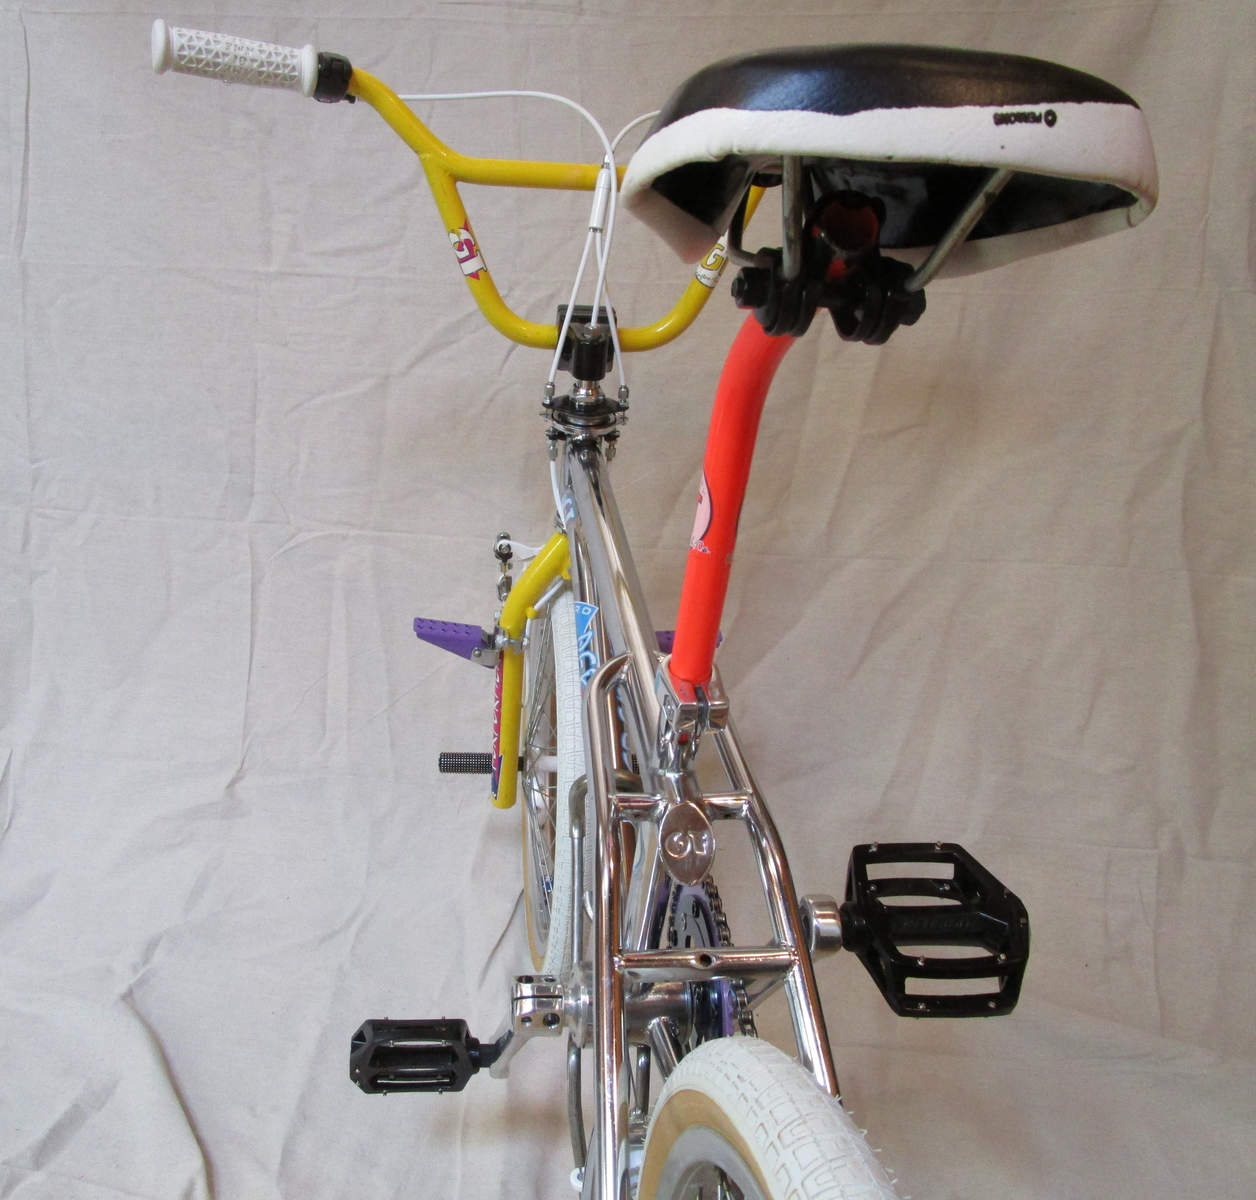 https://s3.amazonaws.com/uploads.bmxmuseum.com/user-images/32472/gt45ce954a097.jpg